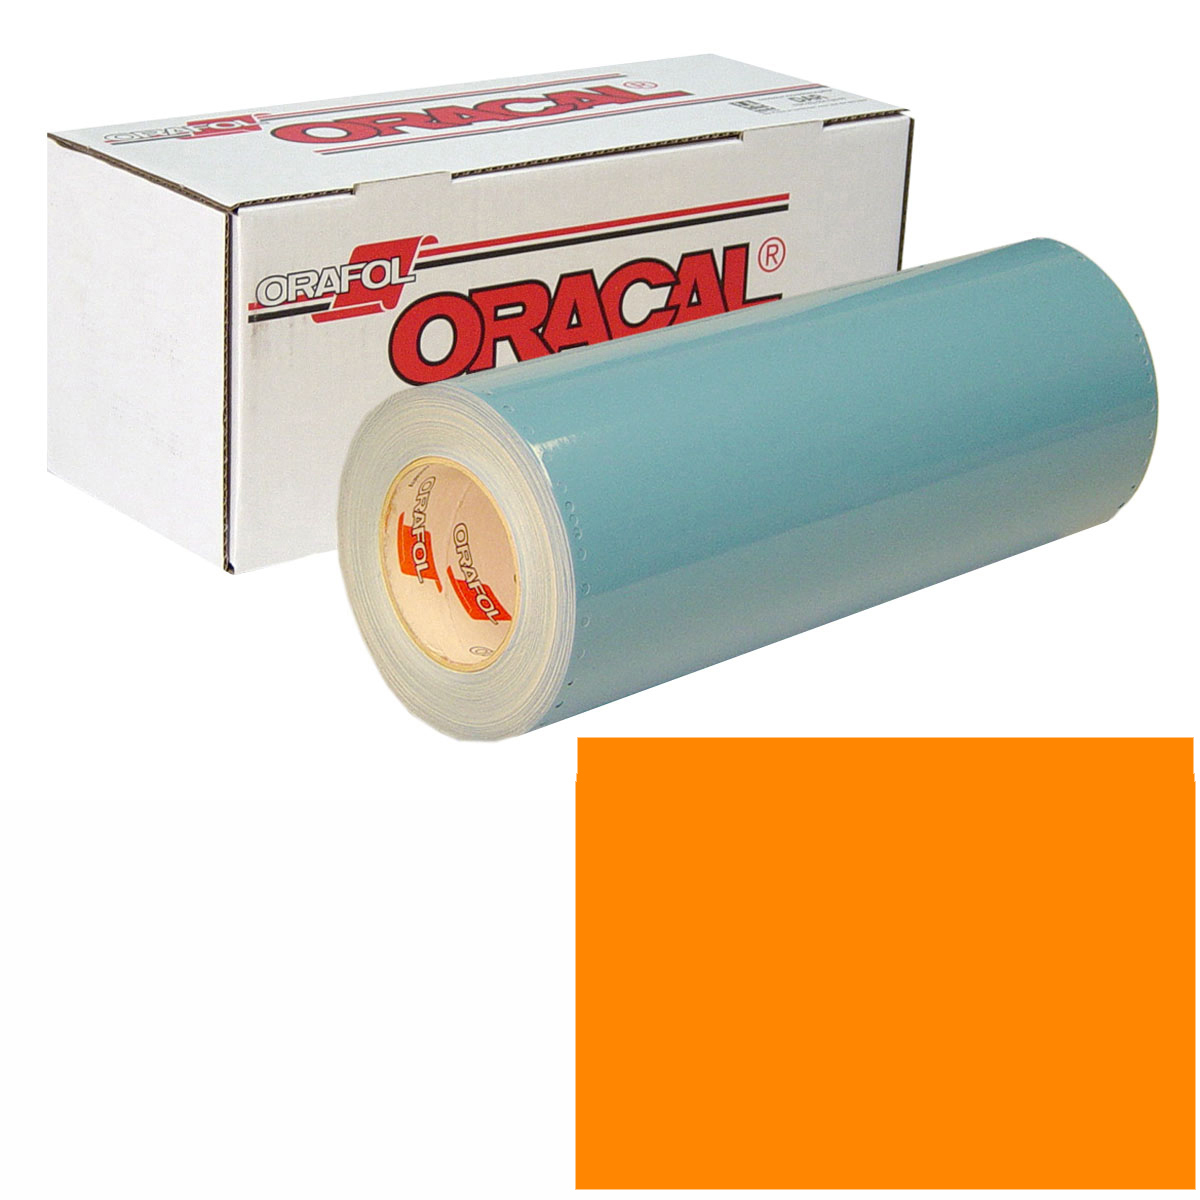 ORACAL 751 Unp 48In X 10Yd 035 Pastel Orange